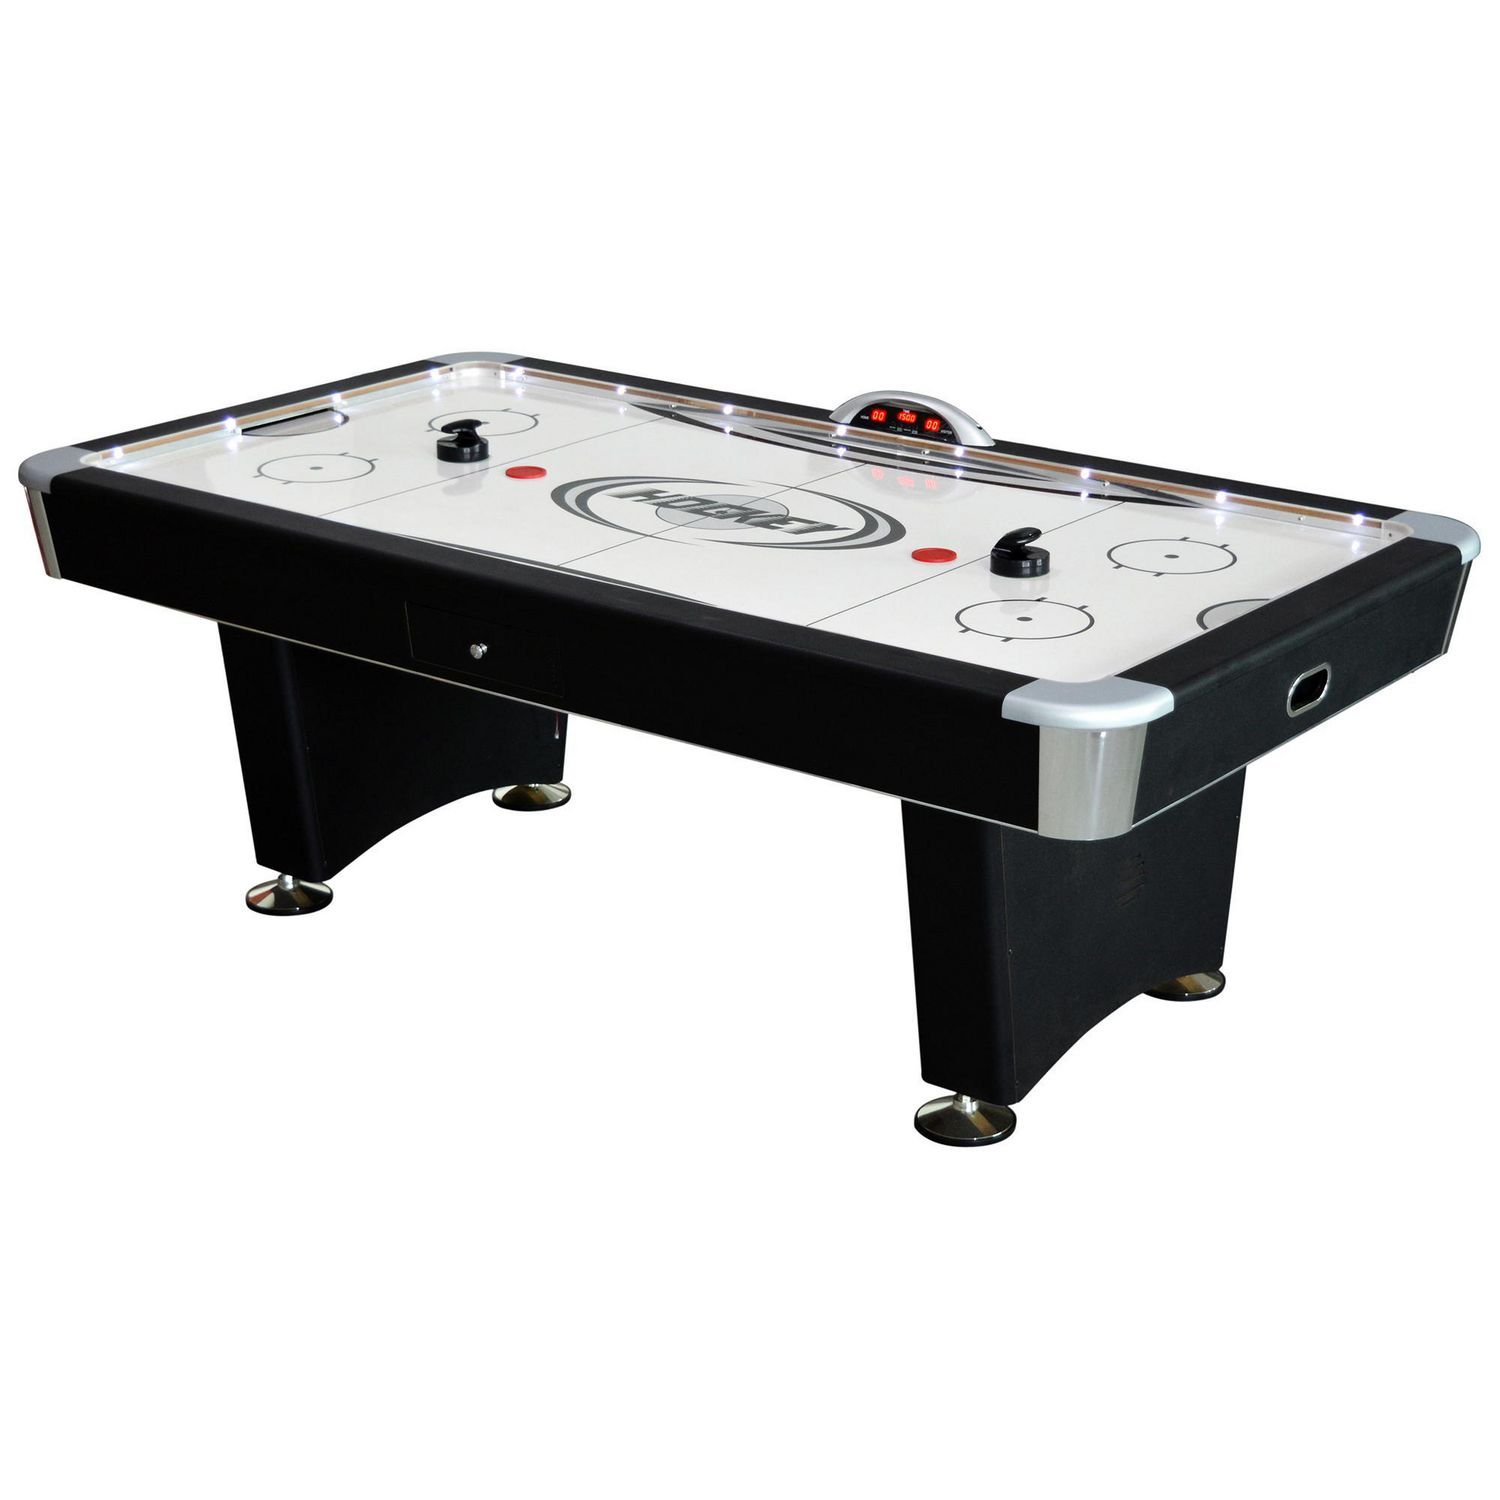 Hathaway Stratosphere 7.5 Ft Air Hockey Table With Docking Station |  Walmart Canada